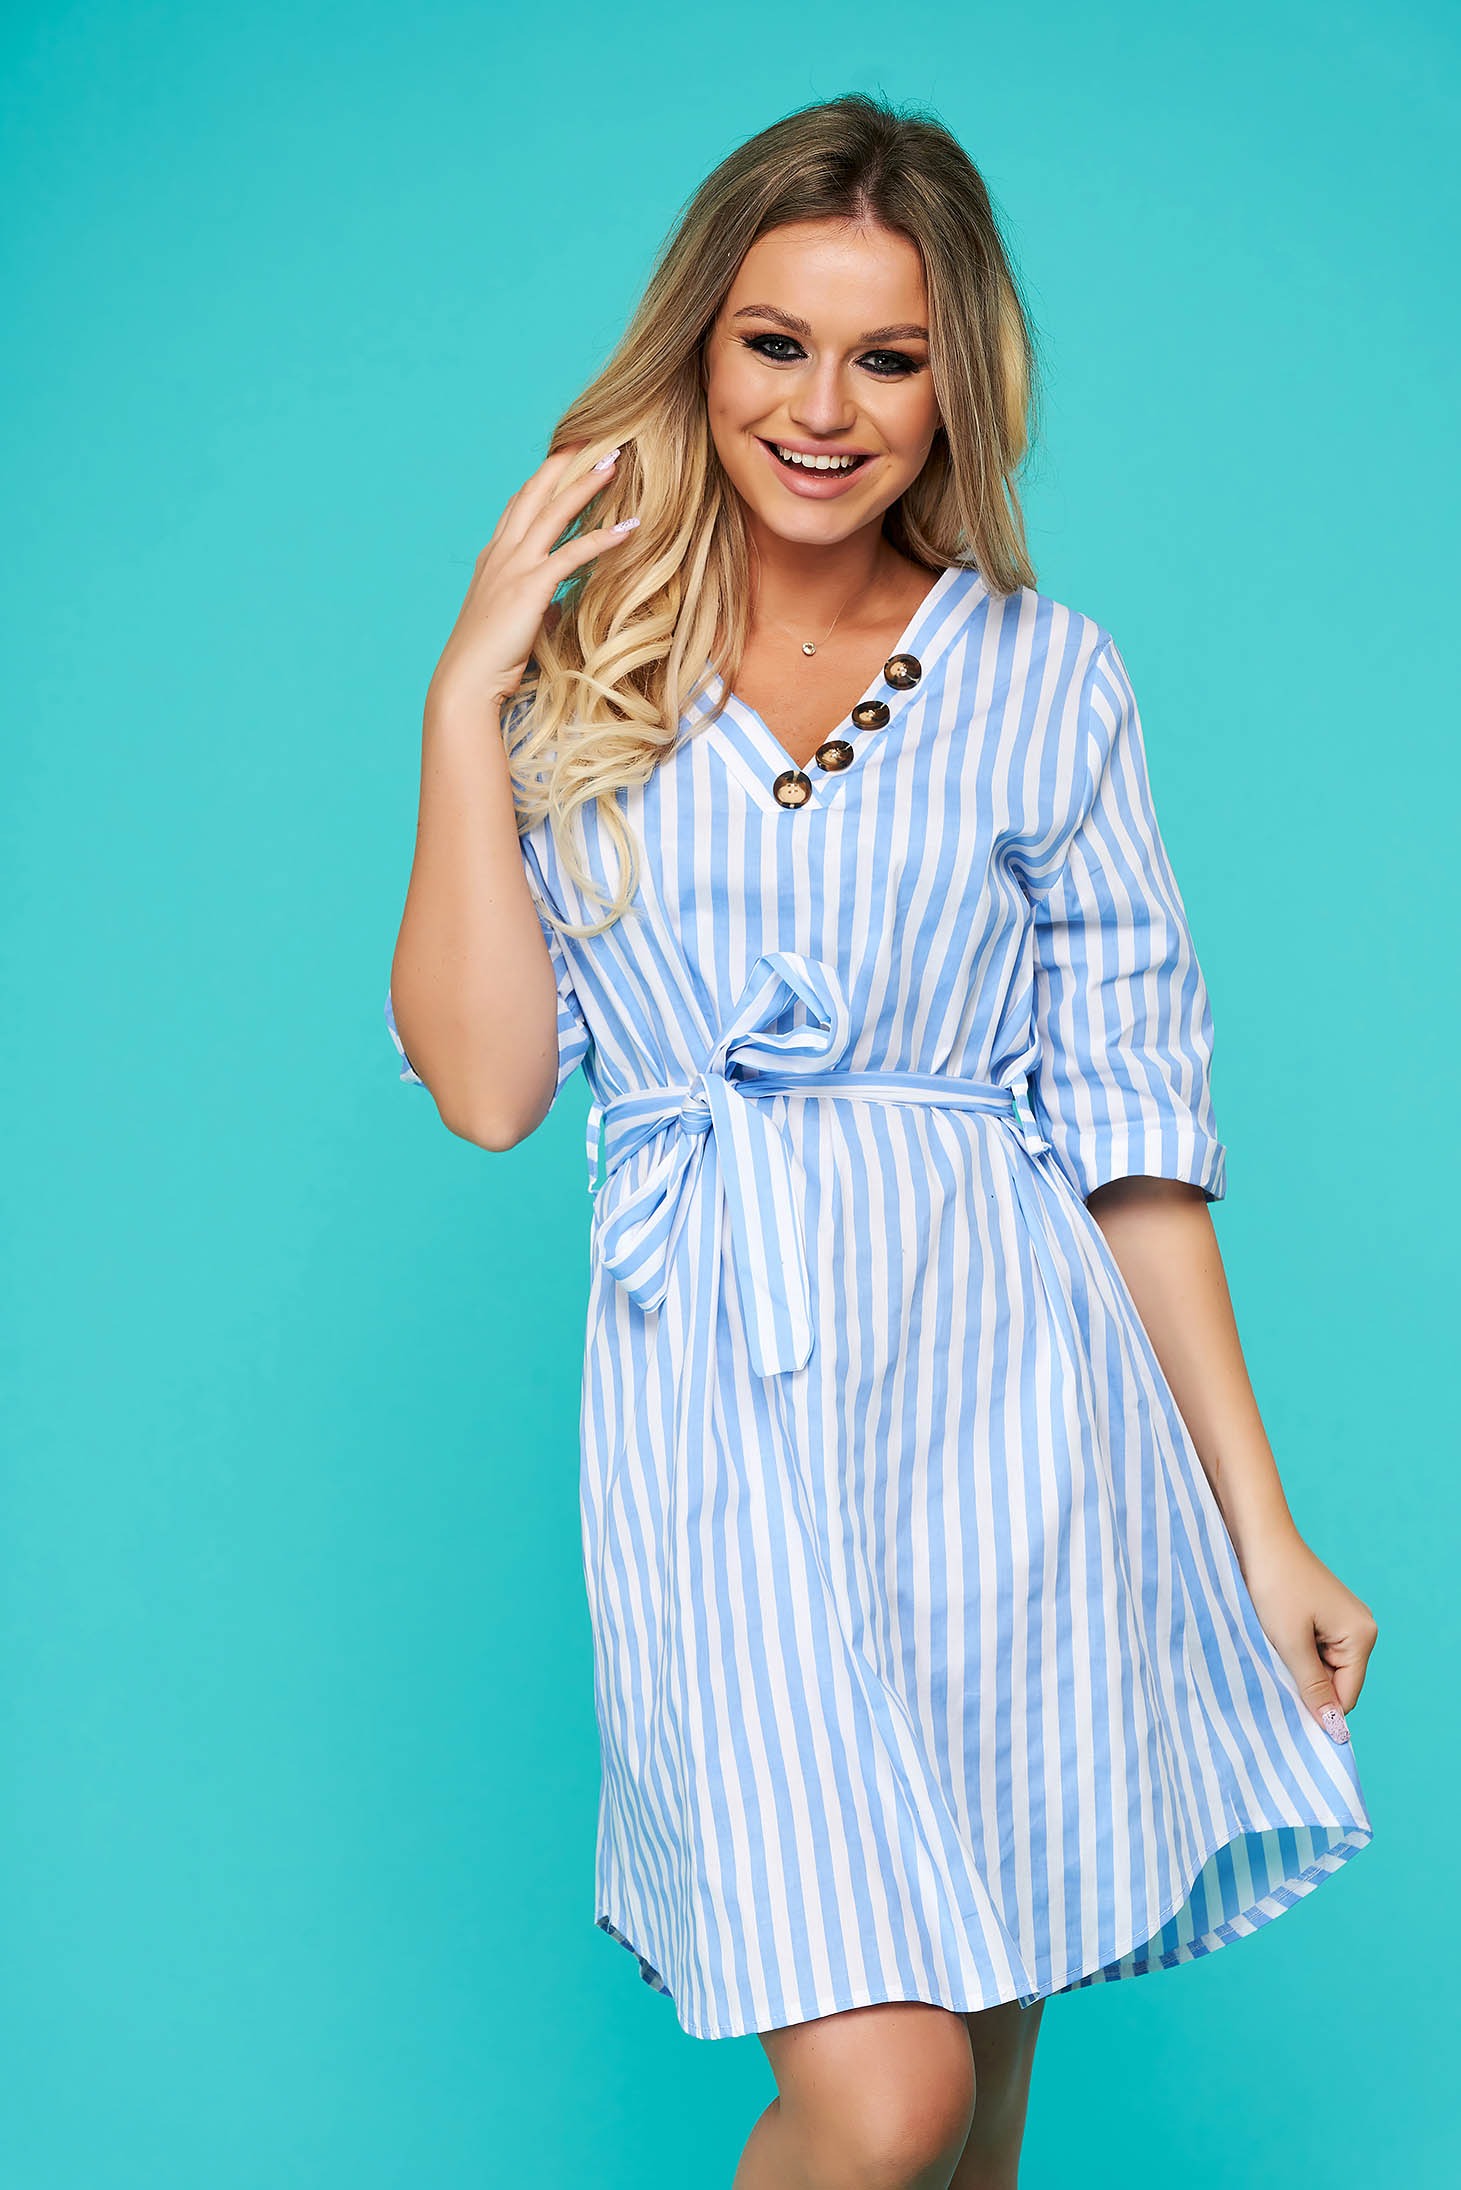 Lightblue dress short cut daily cloche with 3/4 sleeves cotton